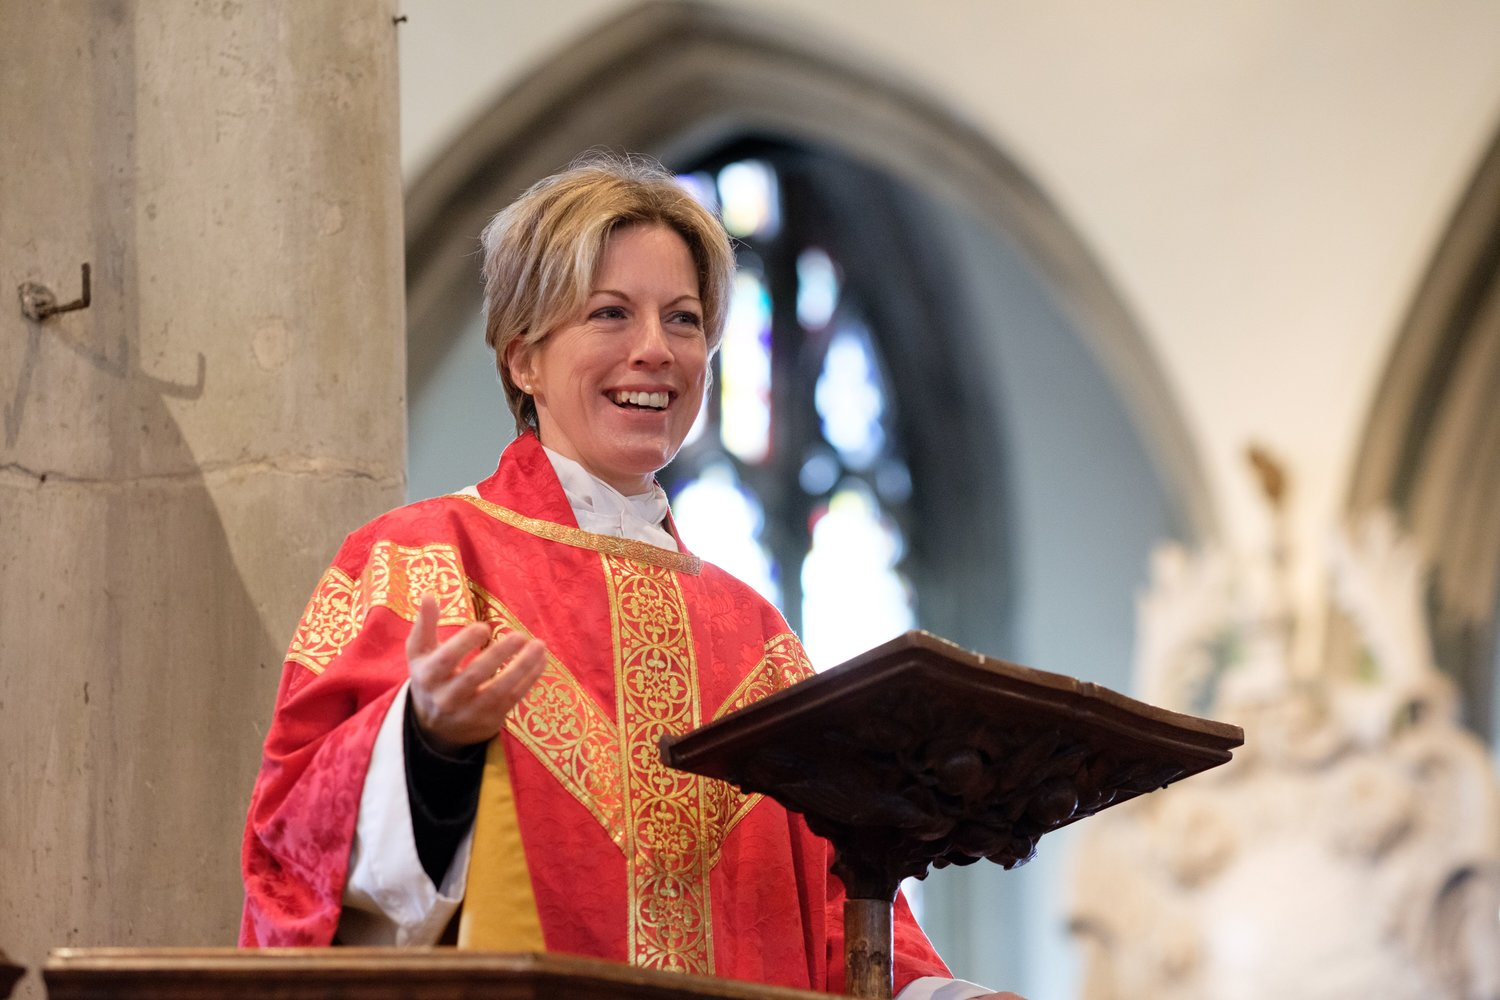 Our New Canon Chancellor and Vice Dean: Kathryn Percival